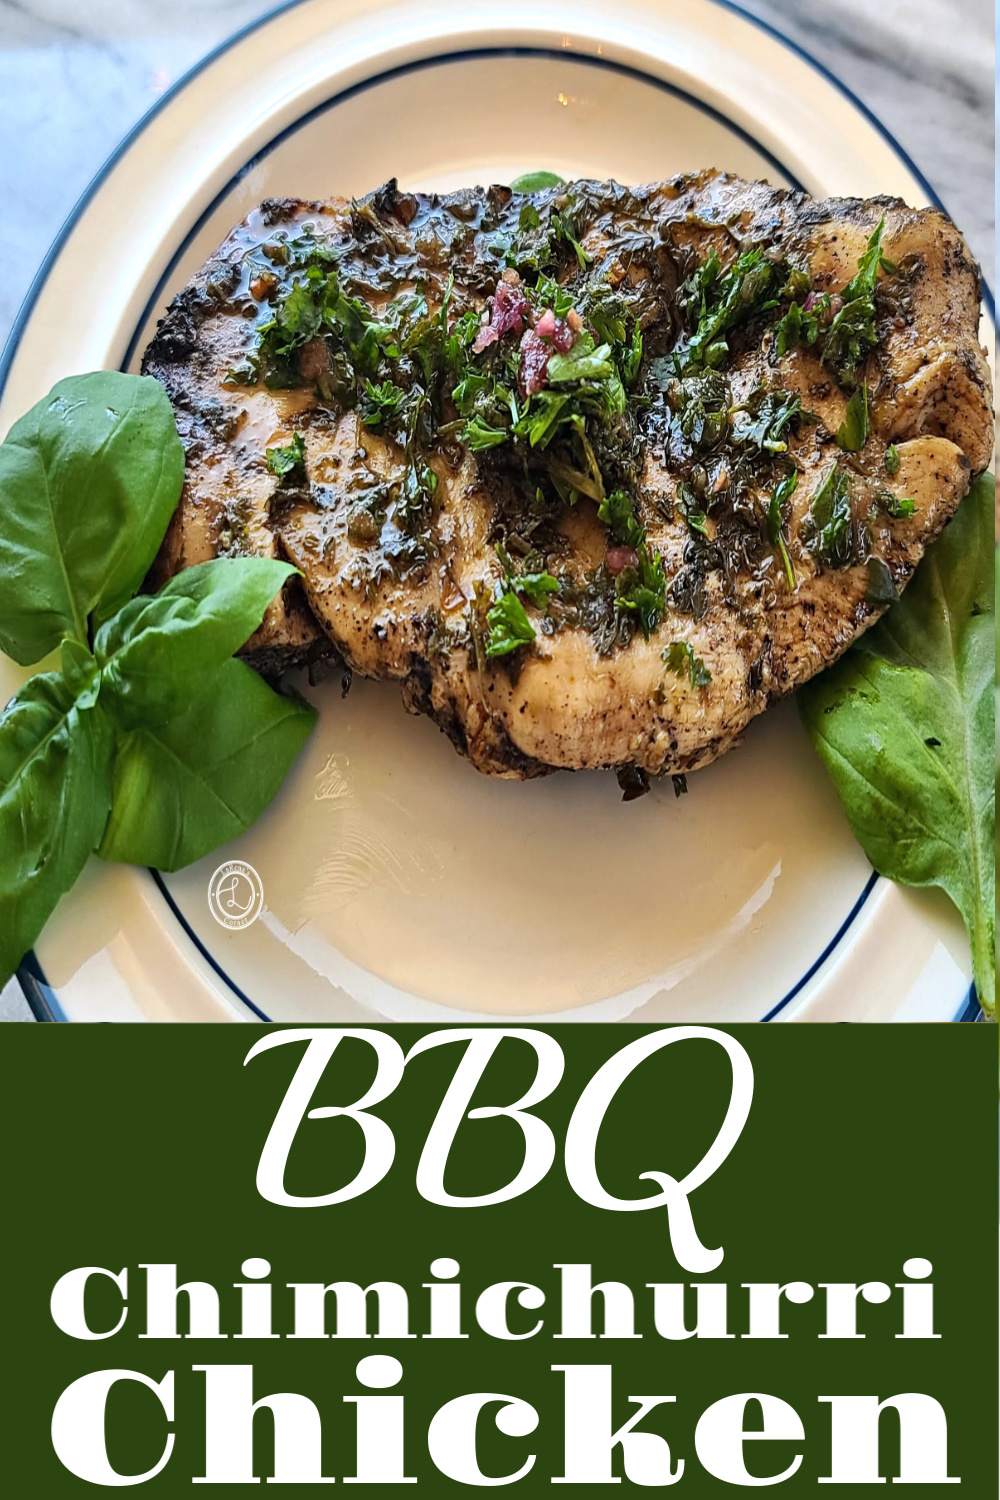 BBQ Chimichurri Chicken on a plate with basil.